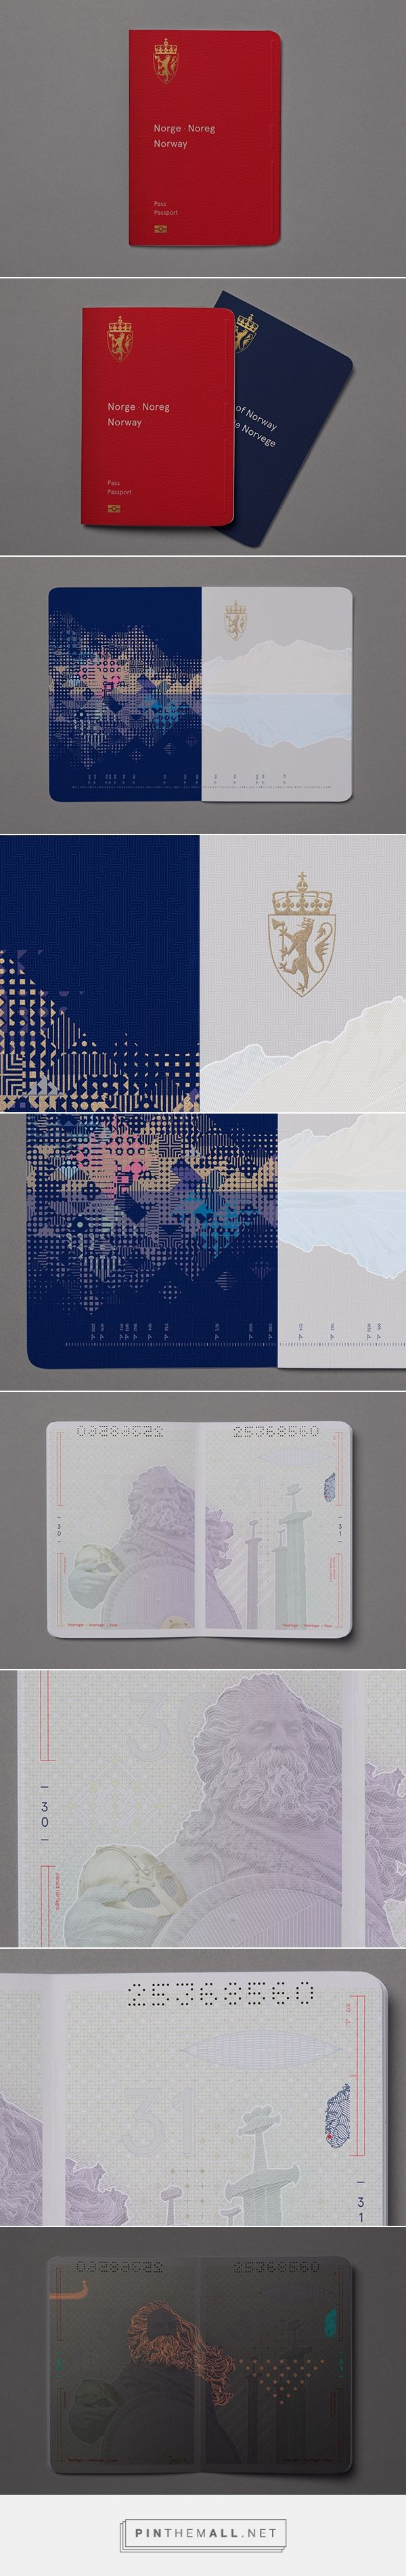 Design Proposal For NorwayS New Passport By